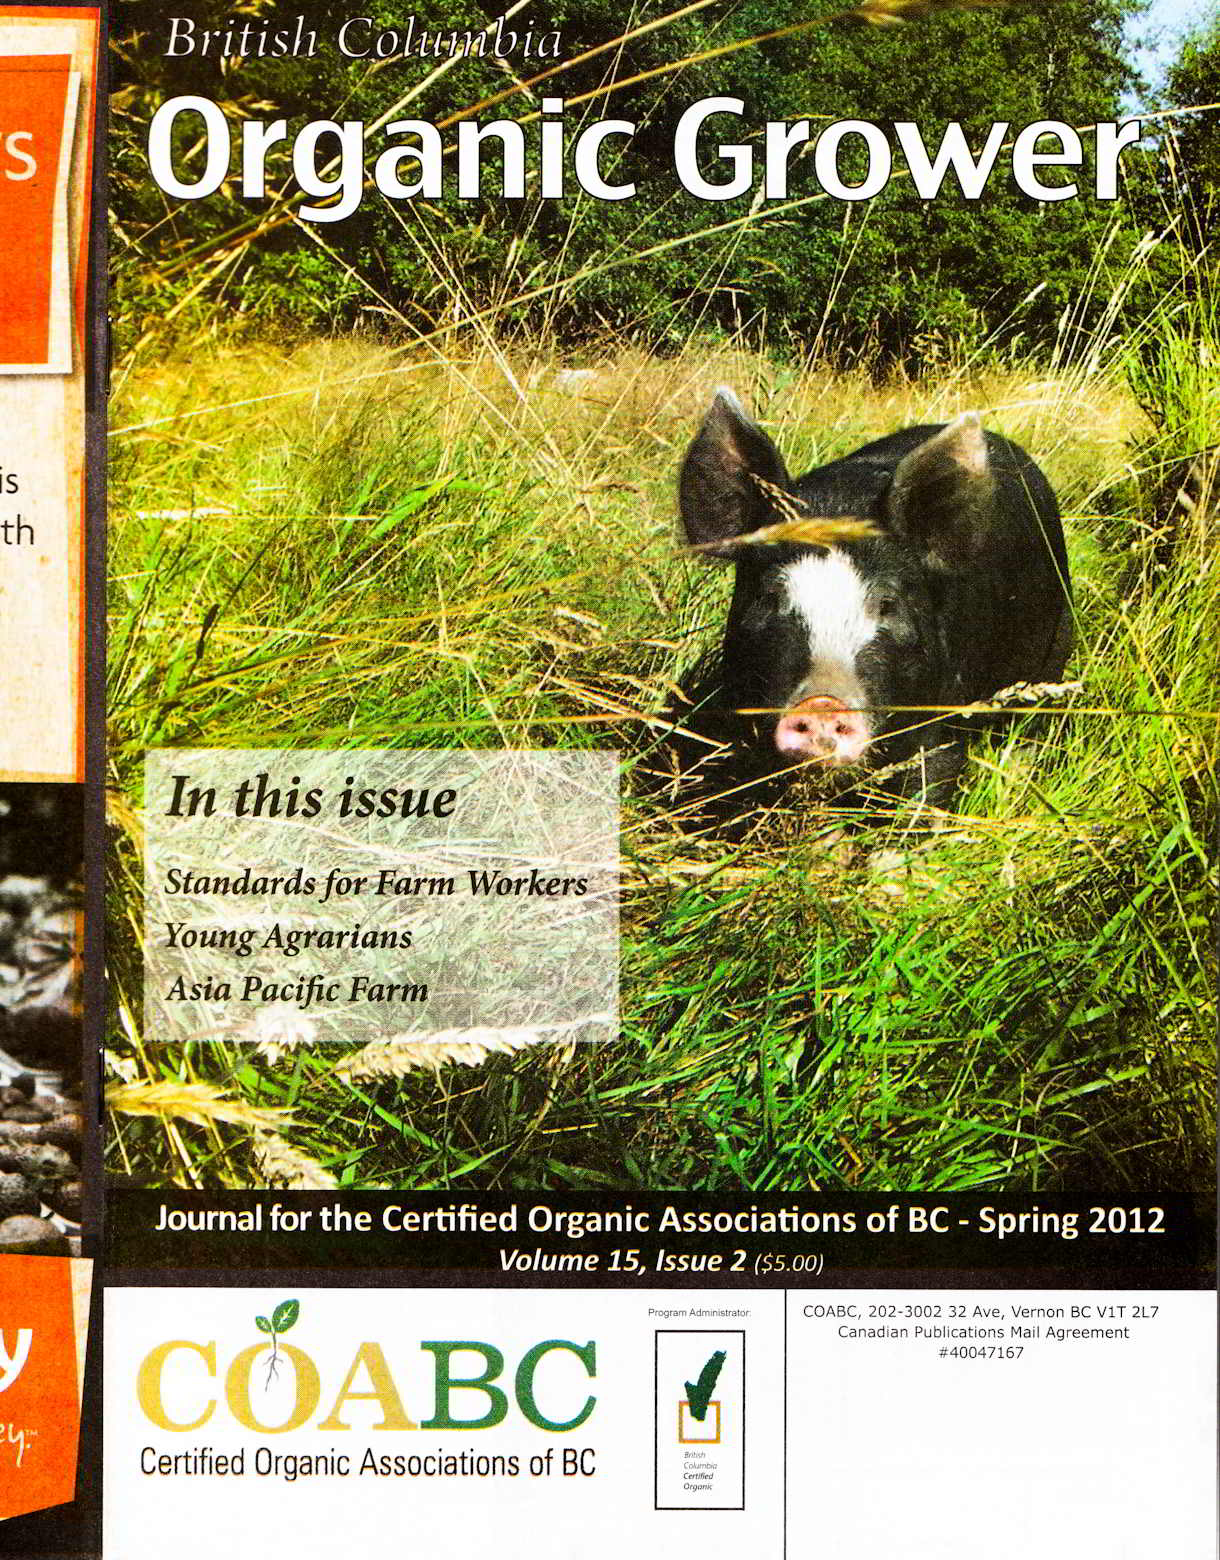 coabc-young-agrarians-article-spring12-1